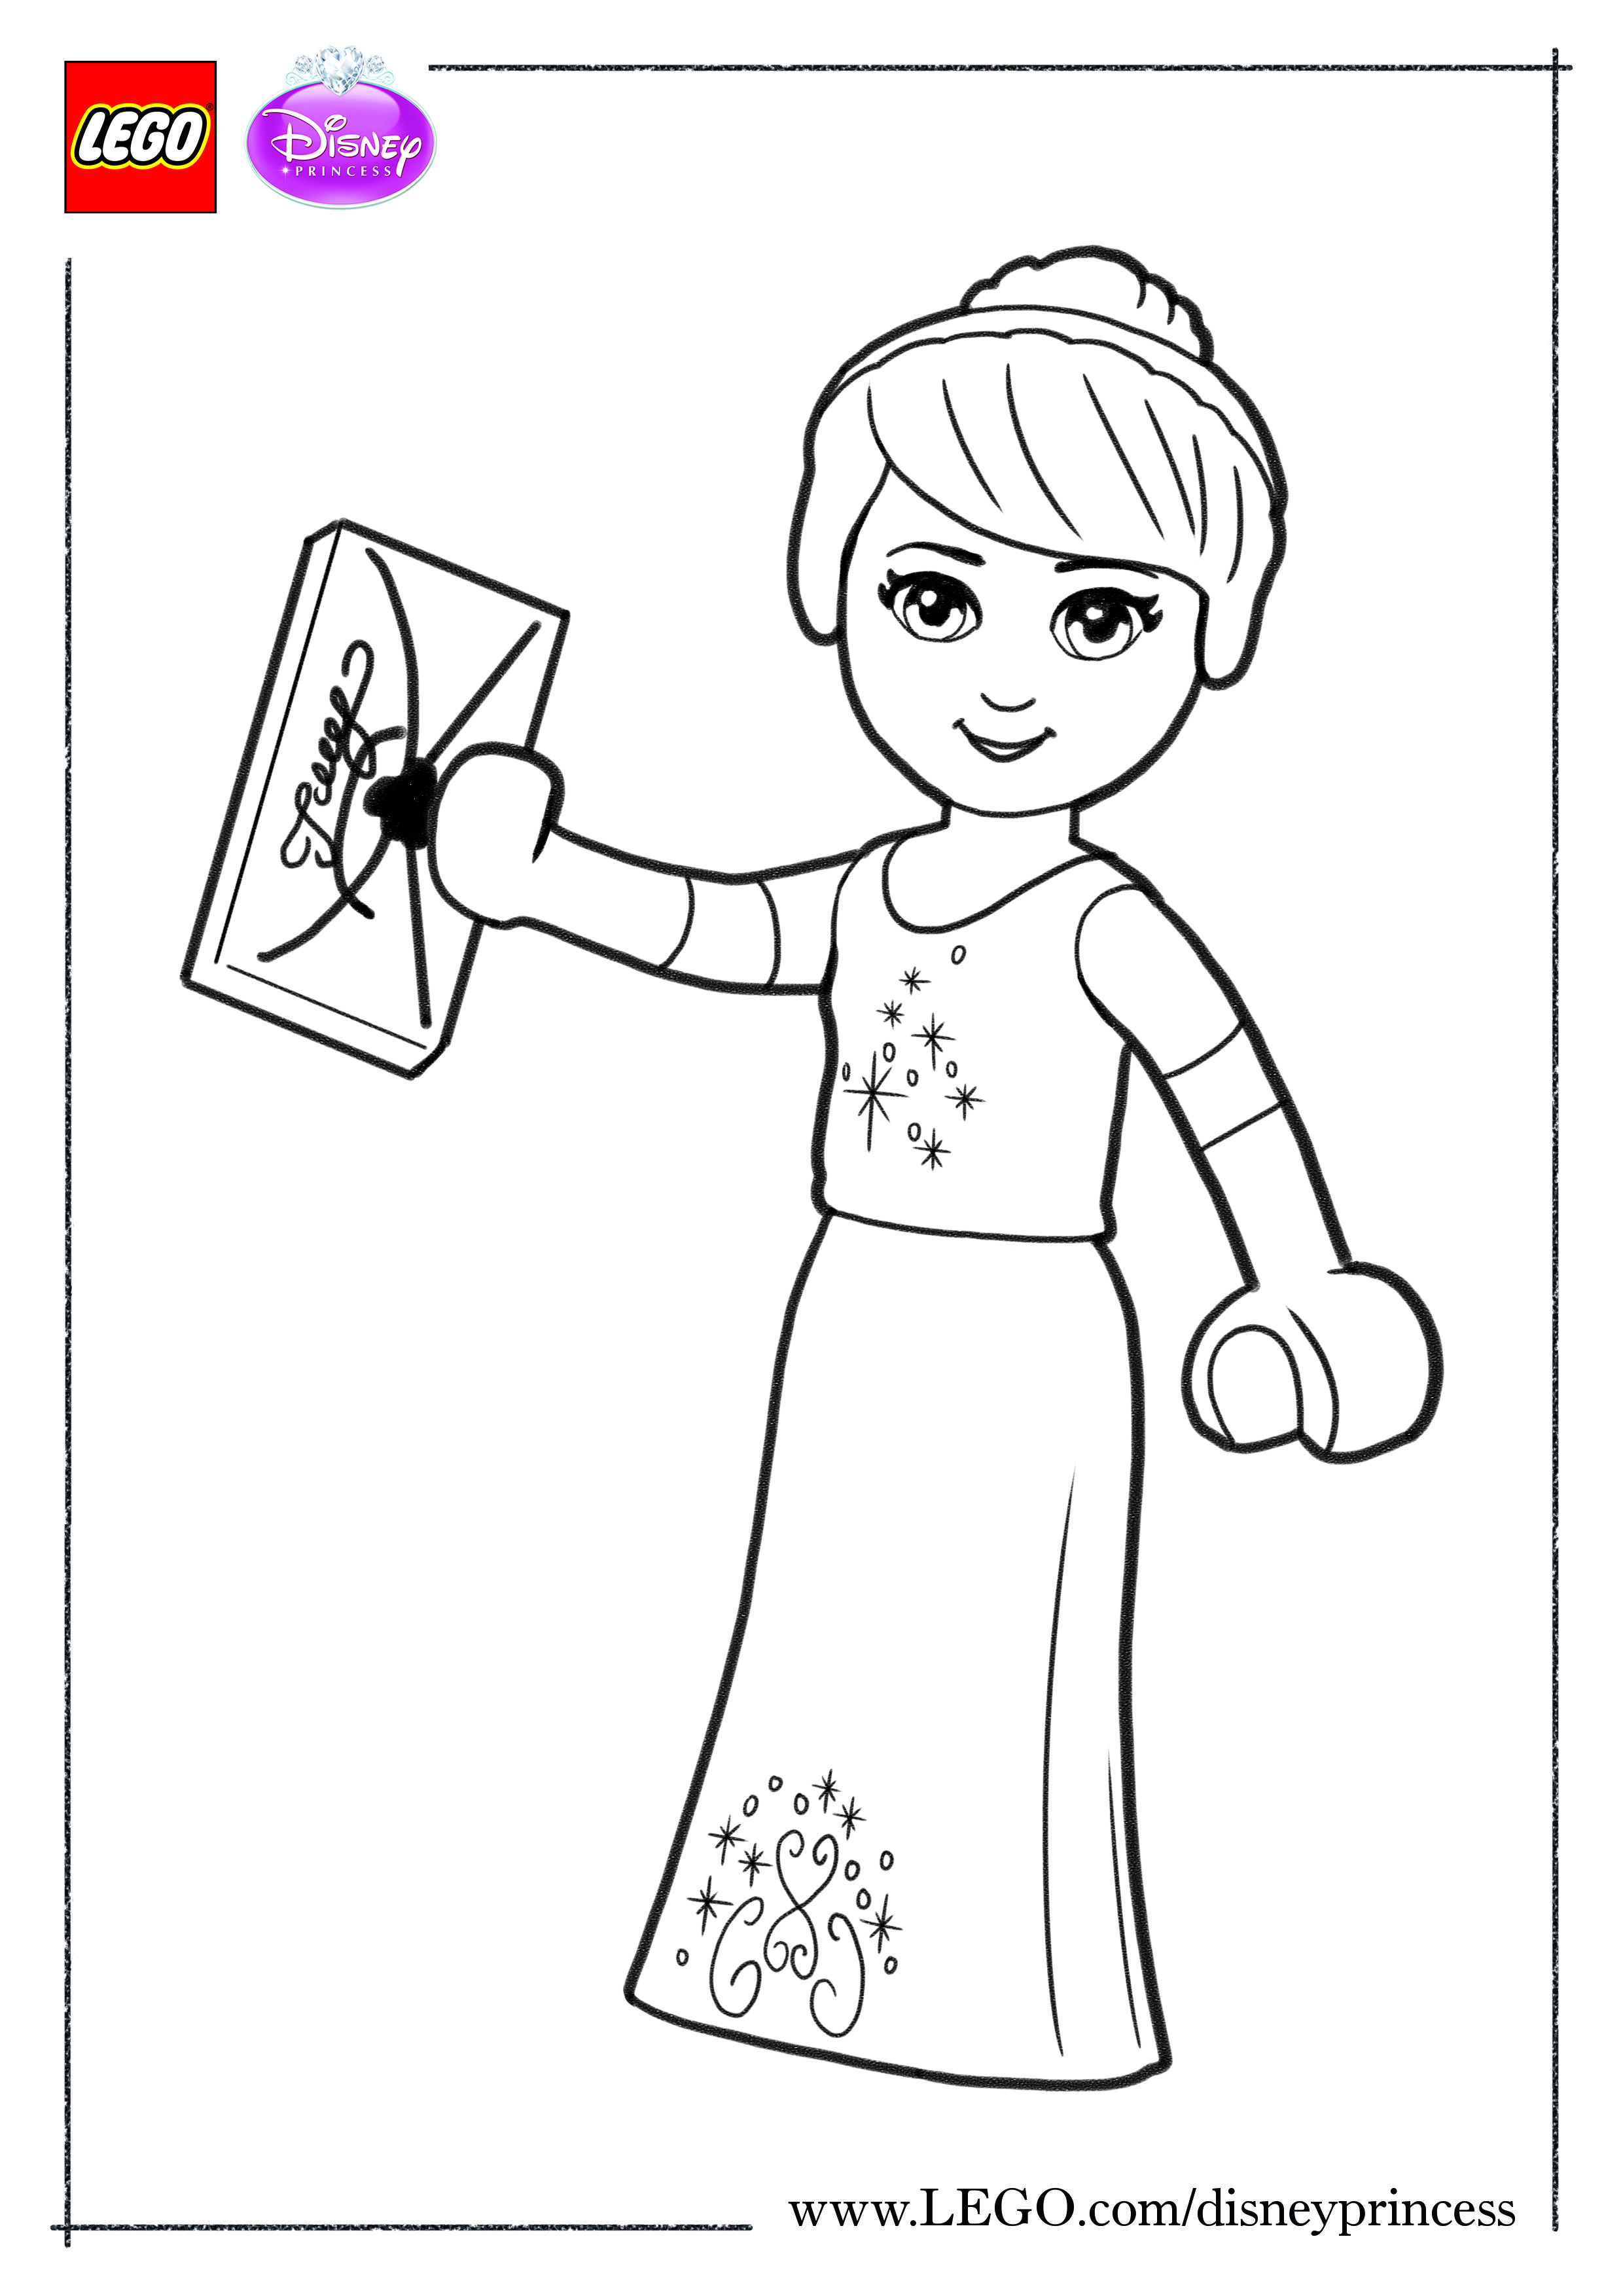 Print this Cinderella coloring sheet and color in your favorite ...